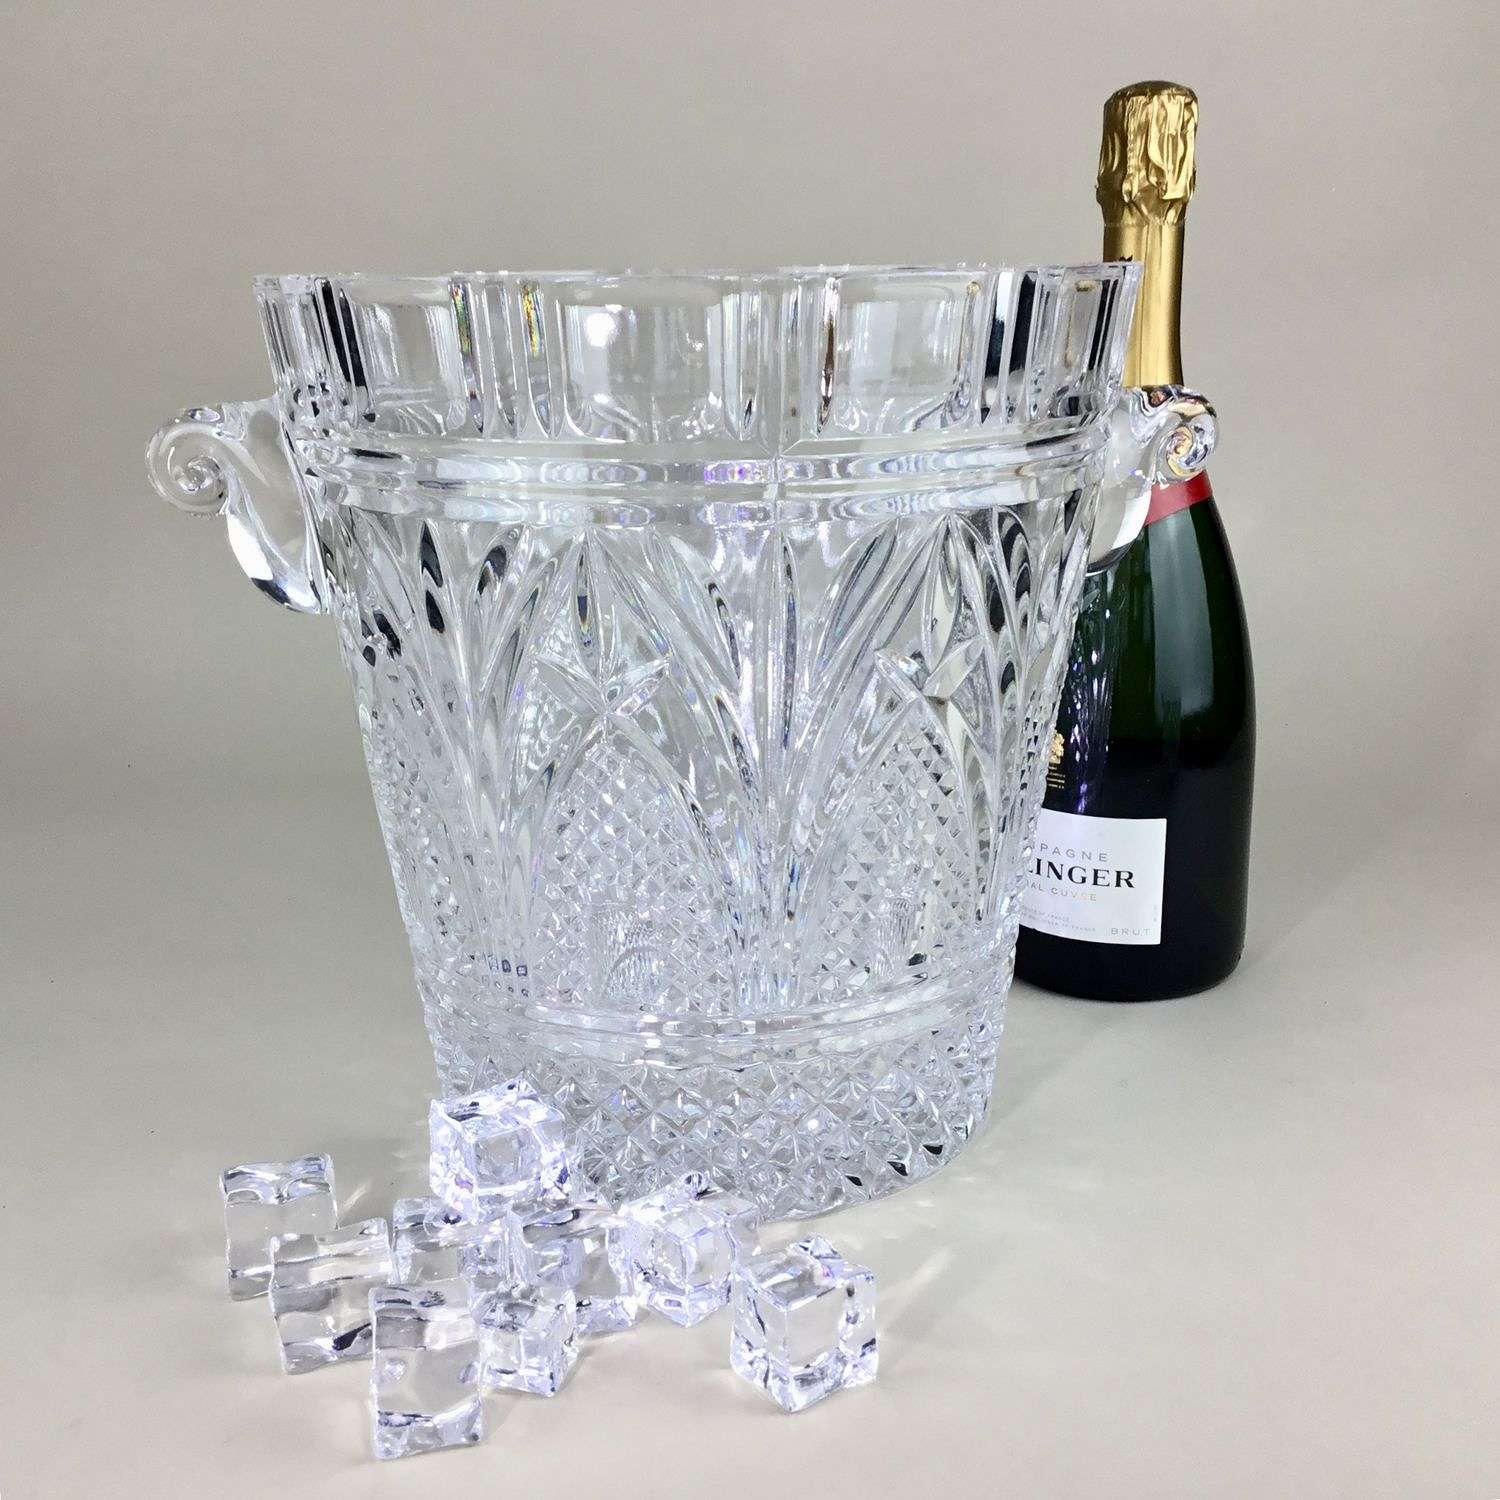 Super heavy cut glass wine cooler vase